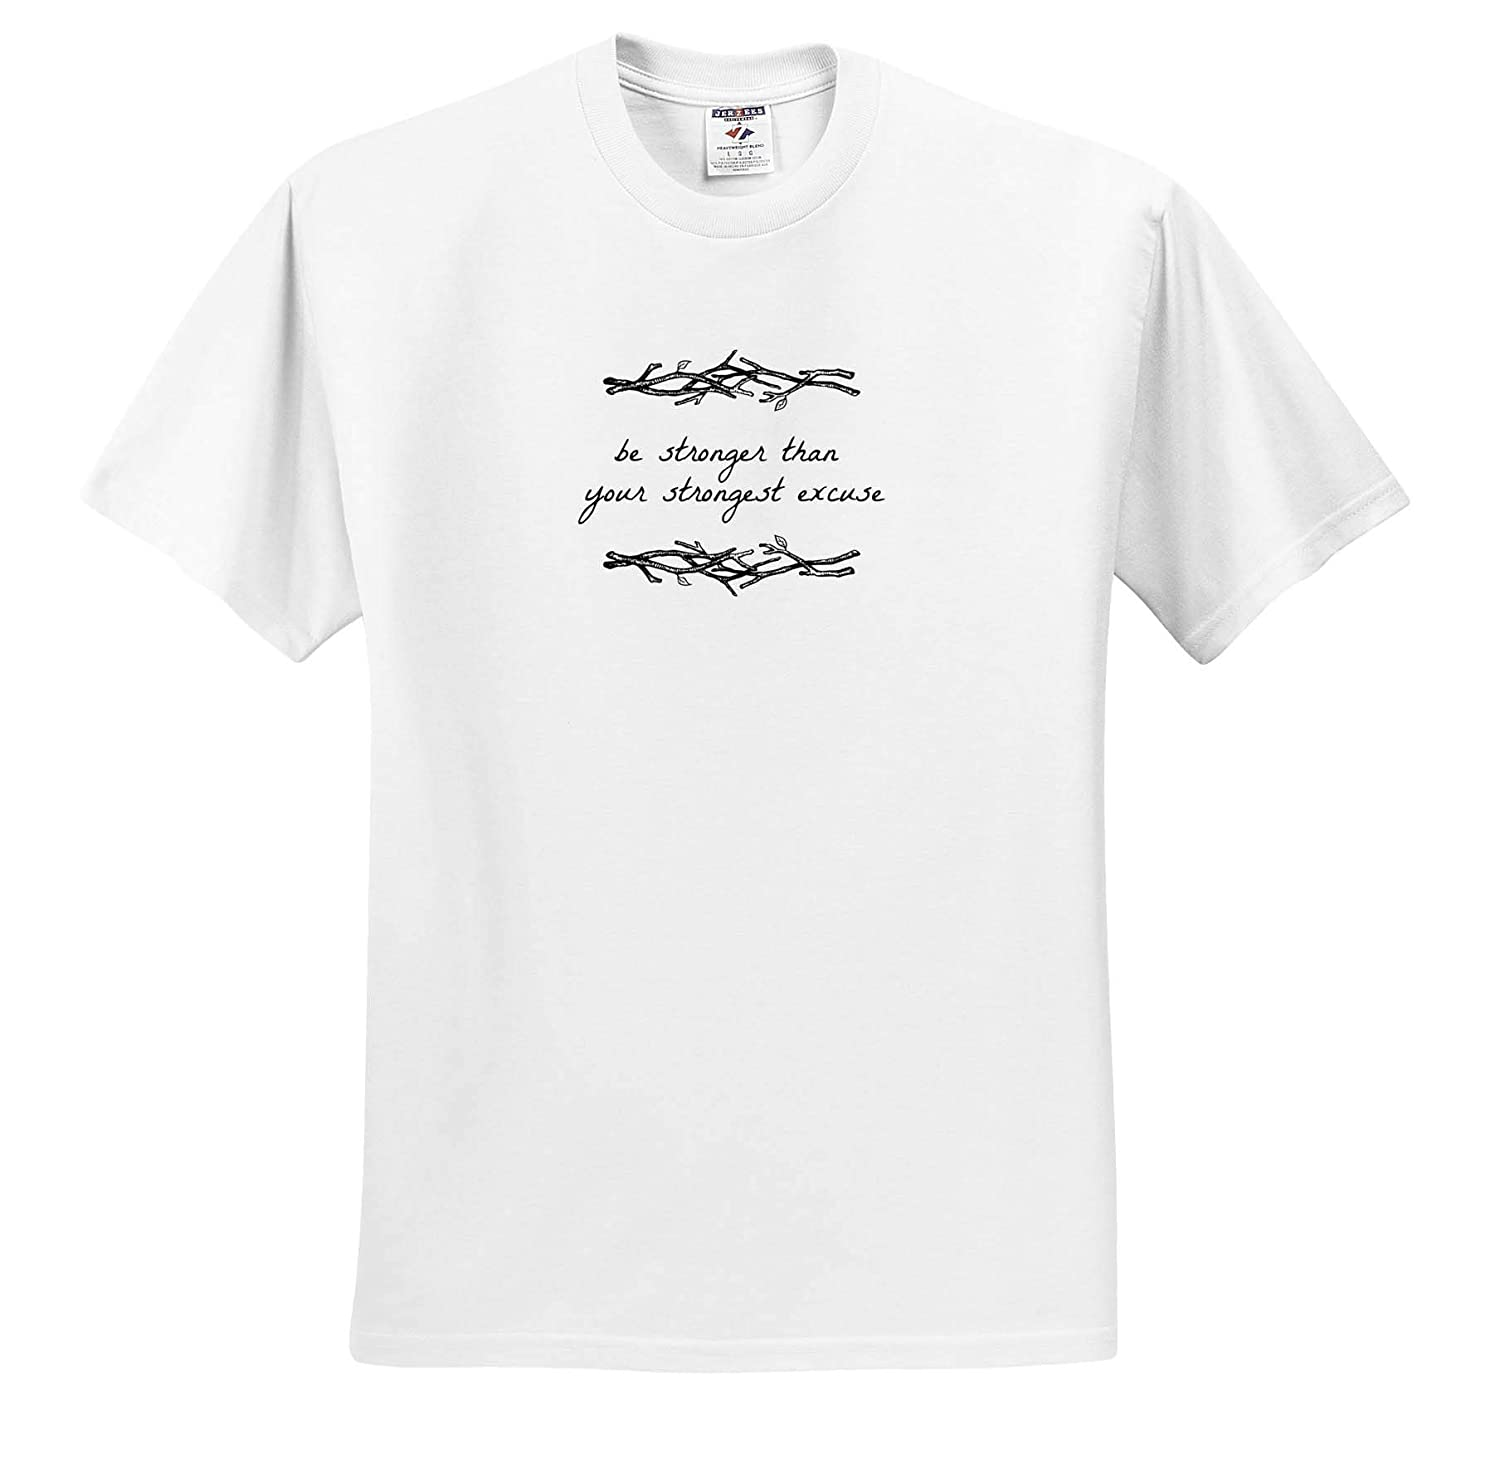 3dRose Nicole R Adult T-Shirt XL ts/_310897 Image of Be Stronger Than Your Strongest Excuse - Quote